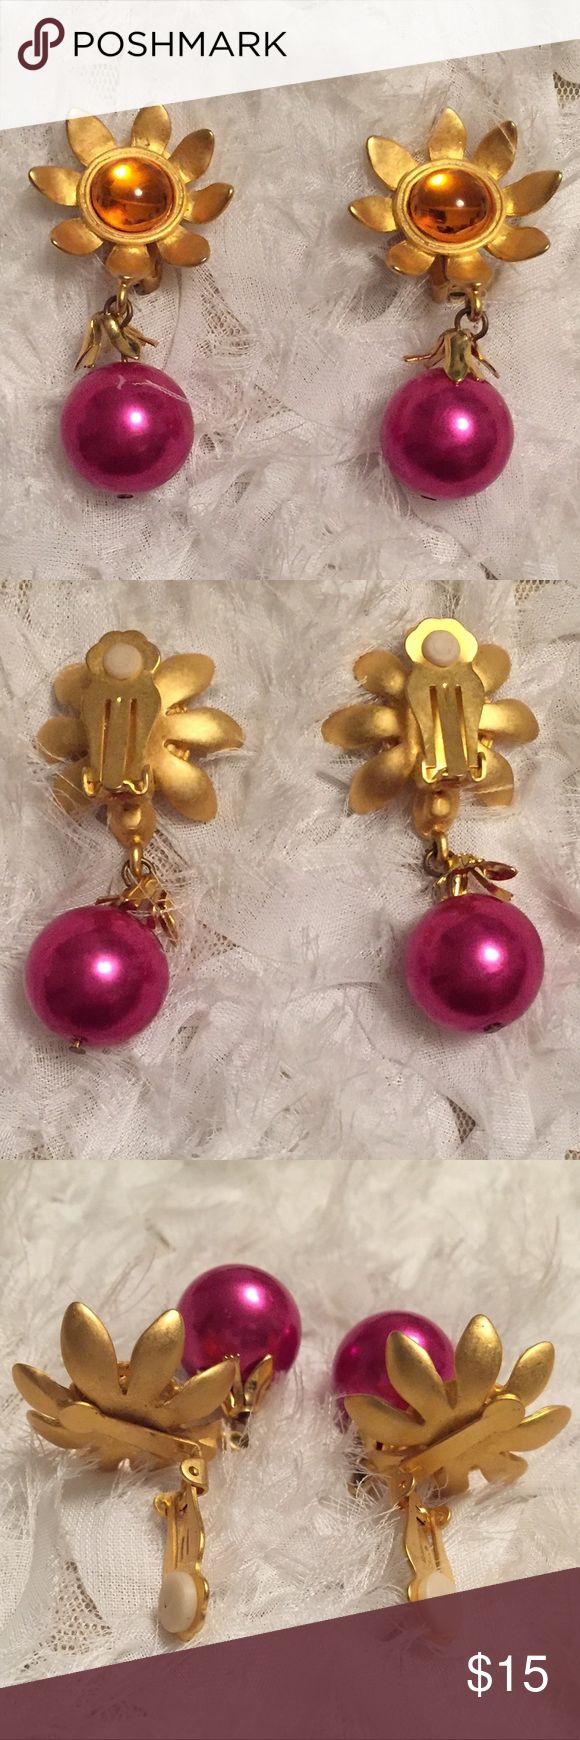 "Flower Drop Earrings Super cute matte gold drop clip on earrings, orange center surrounded by matte gold flower, metallic hot pink drop, 2"" length, gently used in good condition, slight scratches on metallic pink bauble Nordstrom Jewelry Earrings"